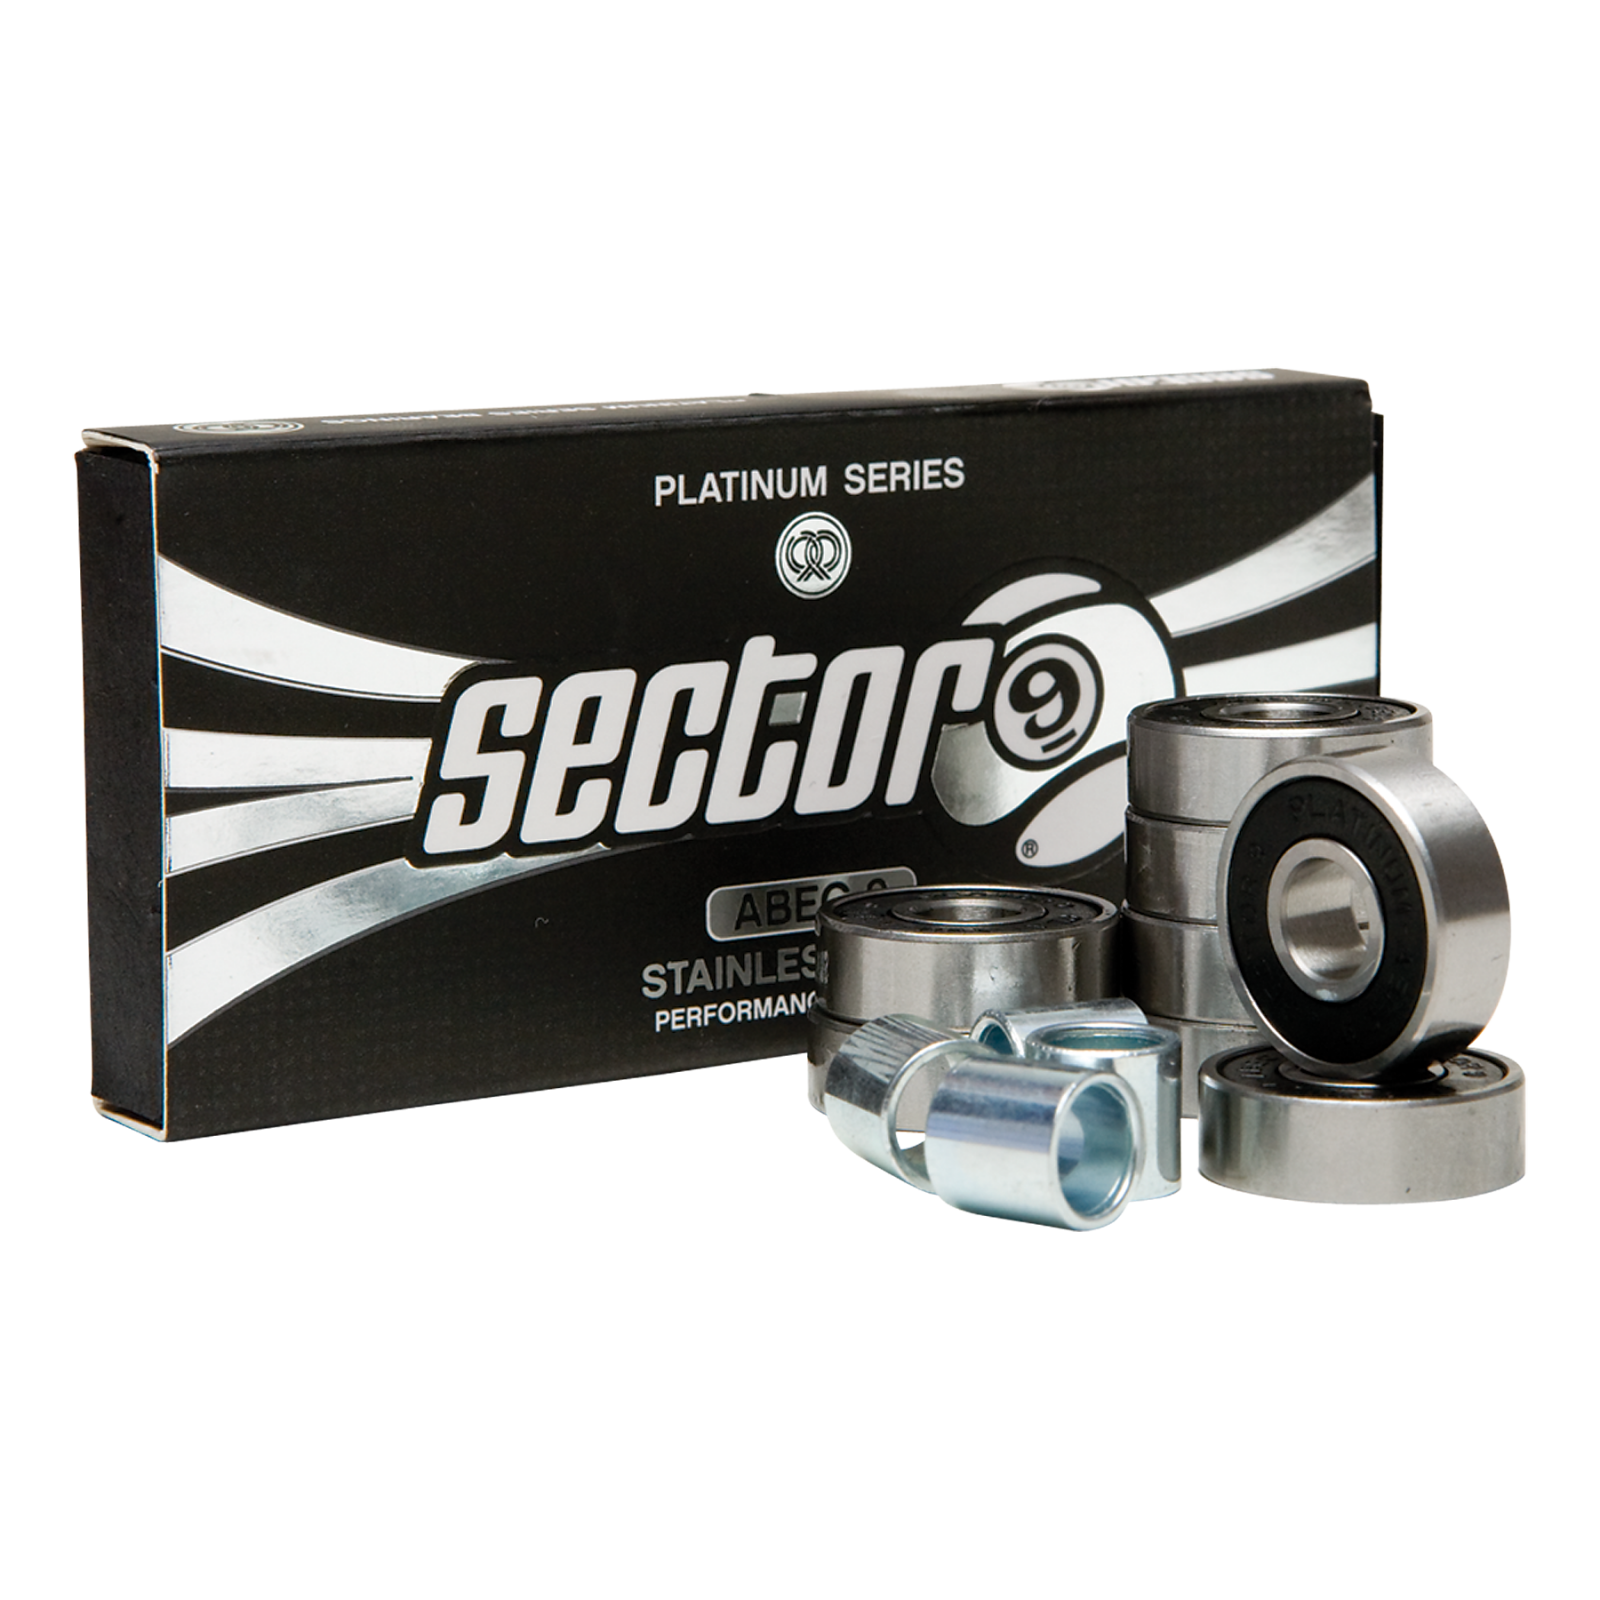 Sector 9 Platinum Stainless Steel Bearing 8 pack